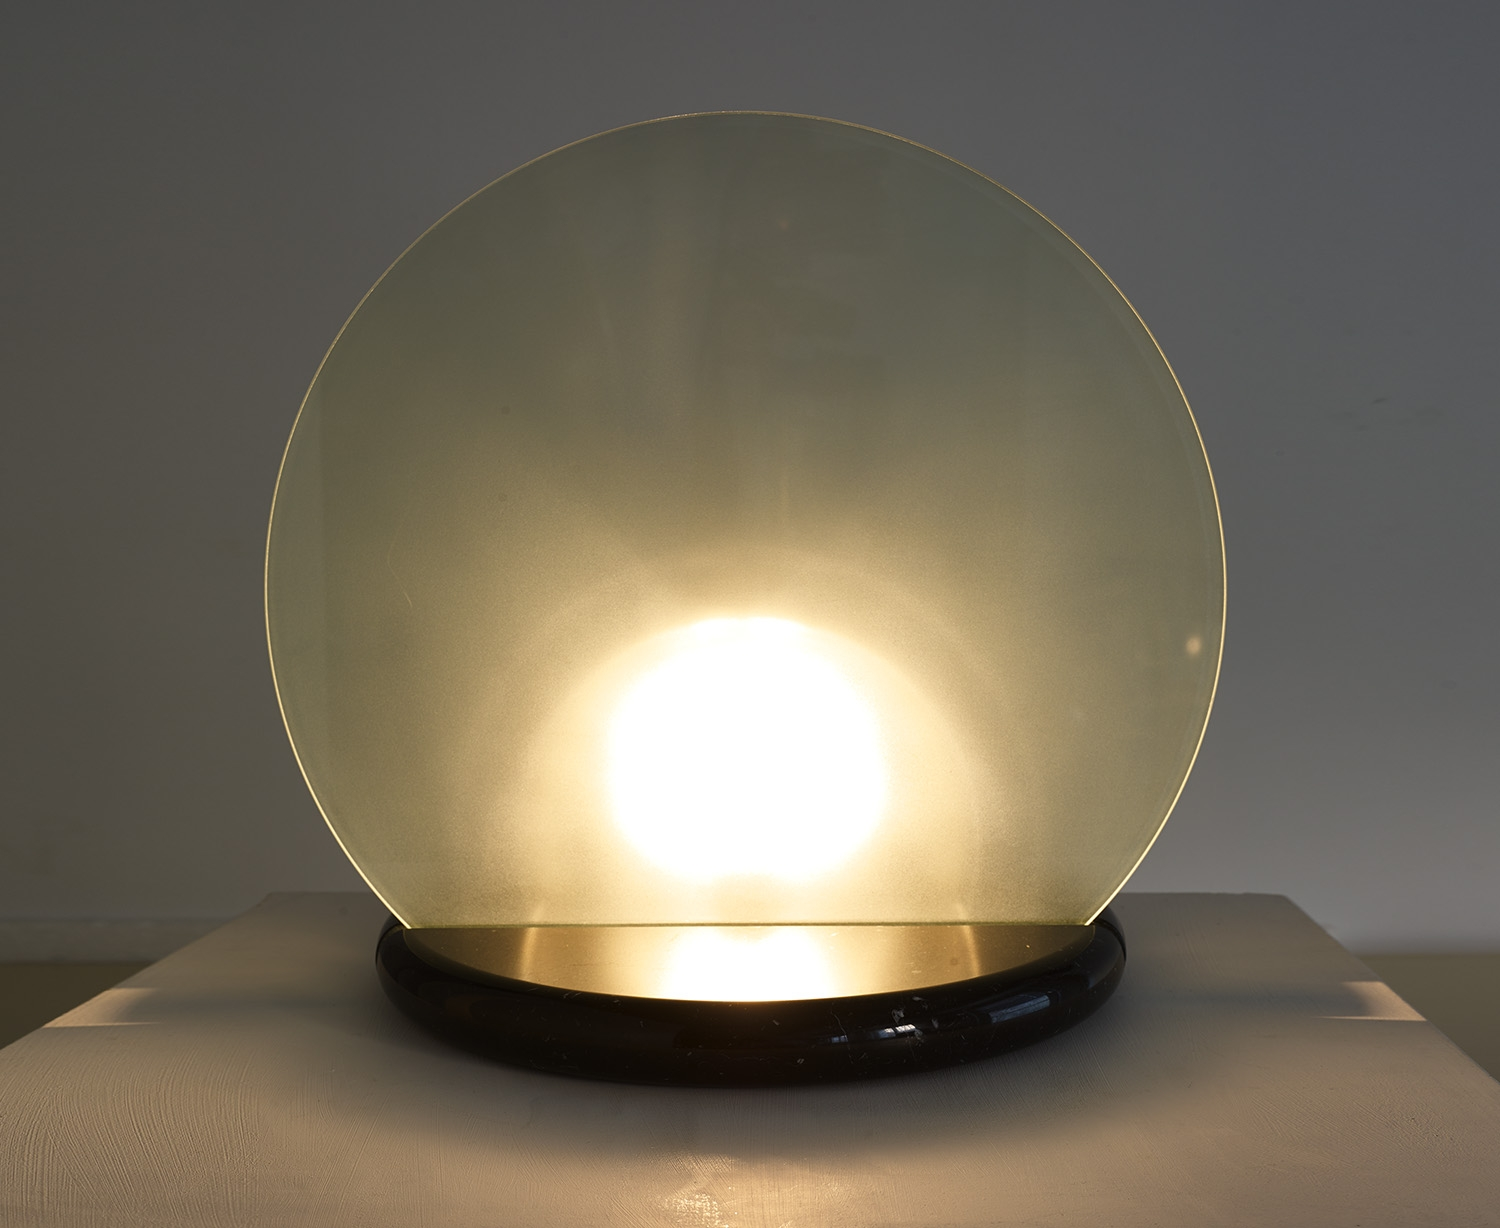 big-gong-table-lamp-by-skipper-italy-1981-image-01